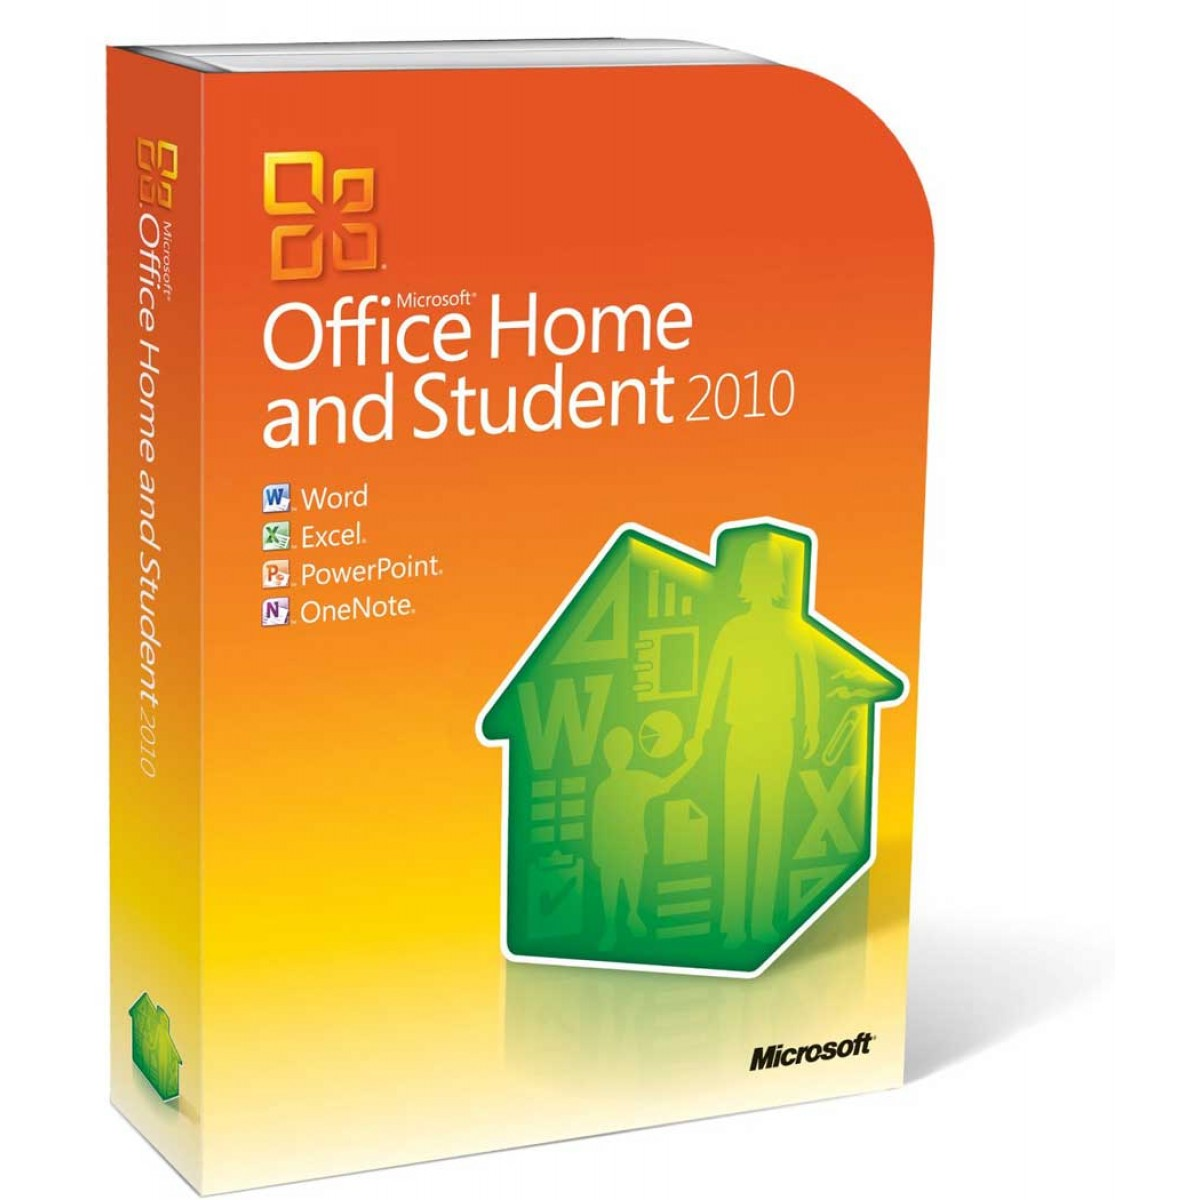 microsoft office home and student 2010 kaufen und. Black Bedroom Furniture Sets. Home Design Ideas